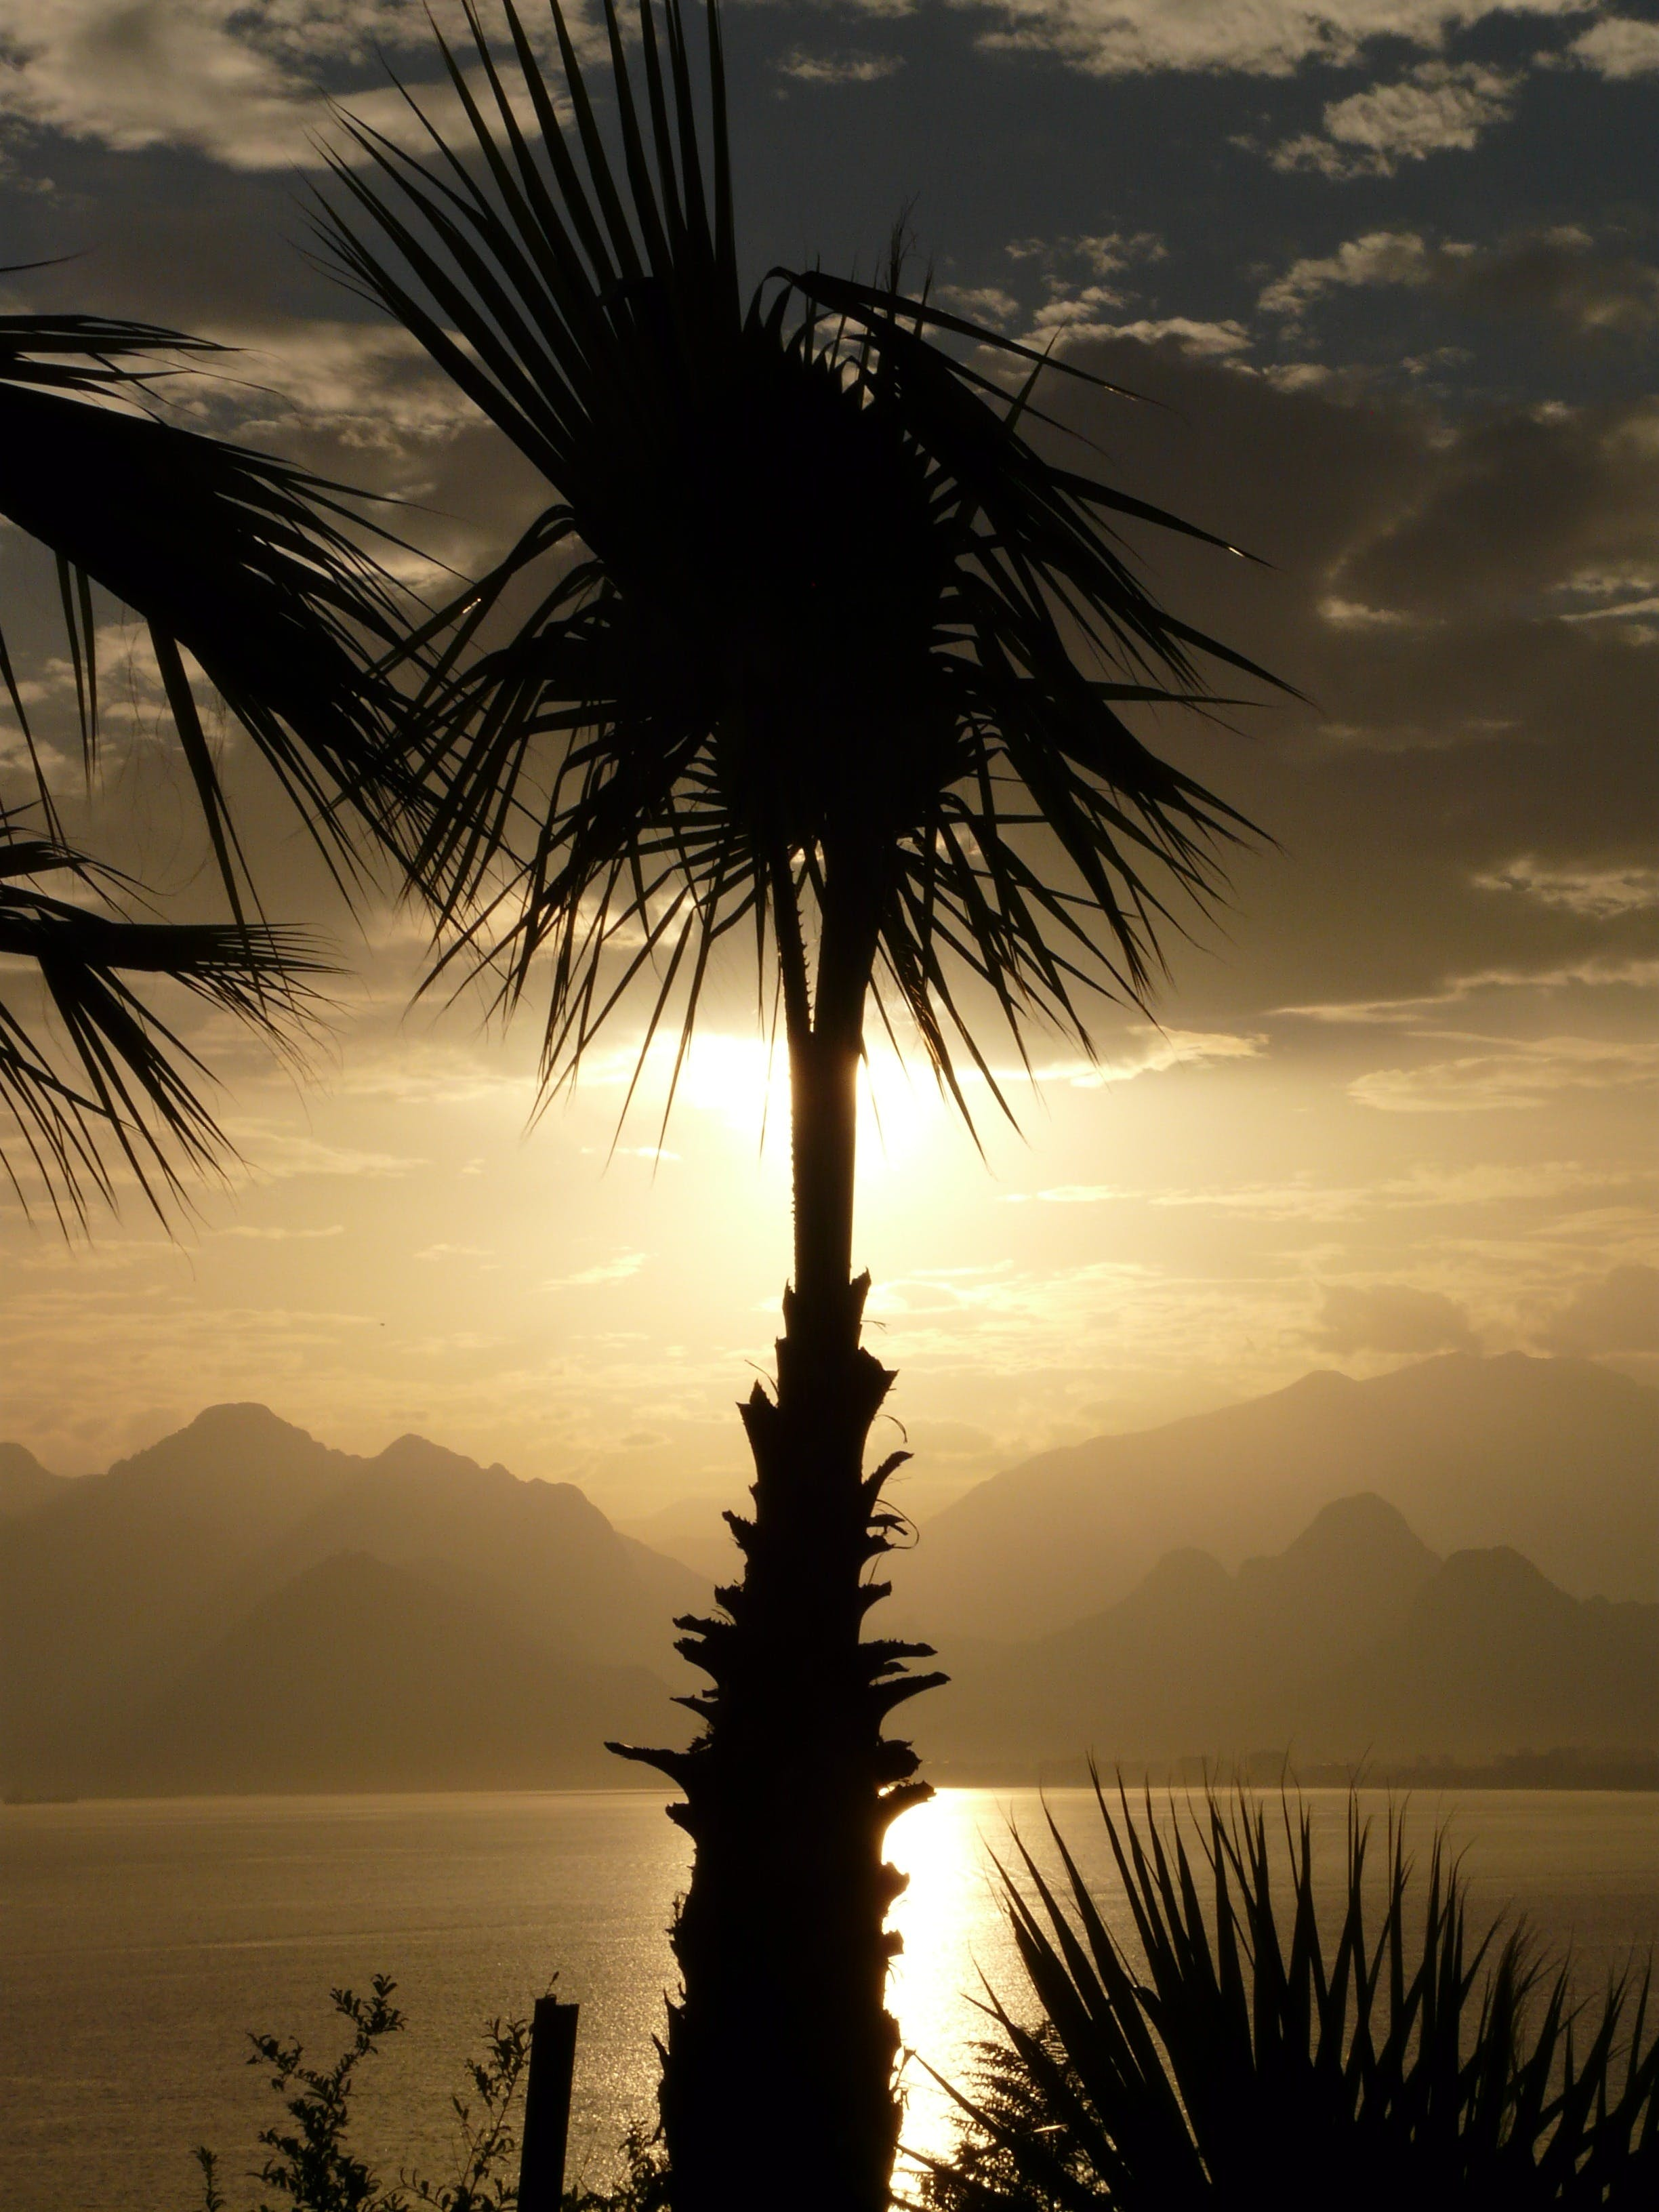 Silhouette Photo of Coconut Tree Beside the Body of Water